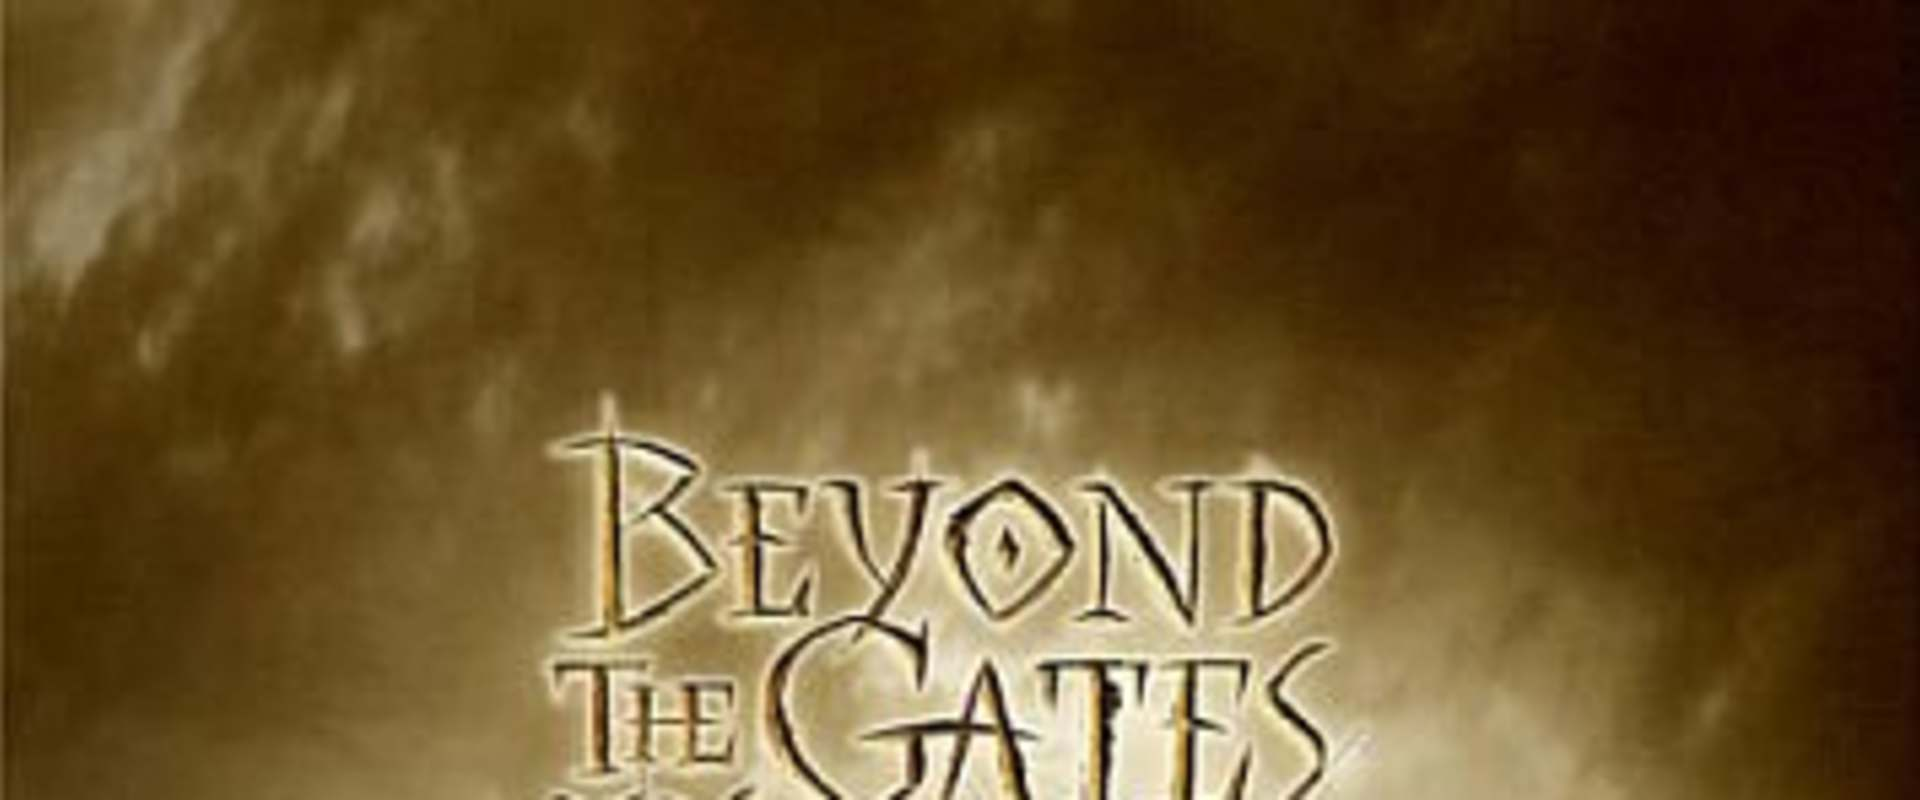 Beyond the Gates of Splendor background 1